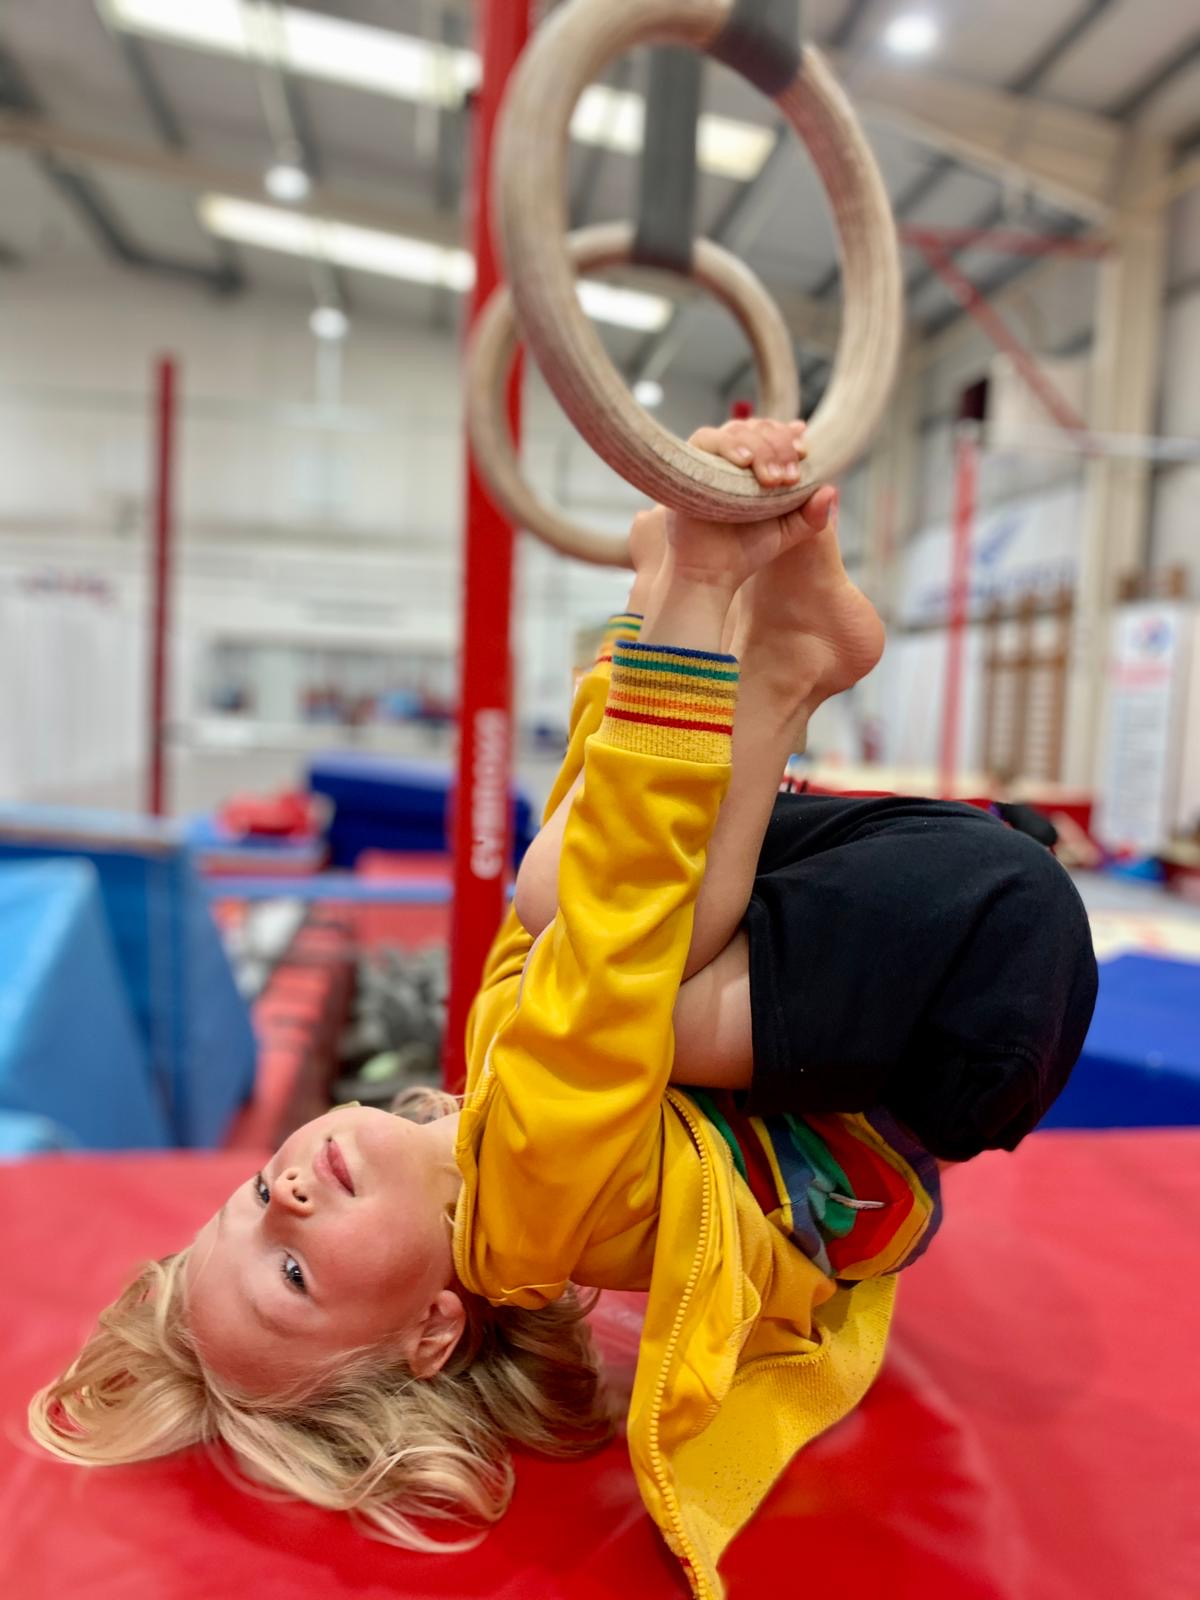 making friends and having fun with gymnastics